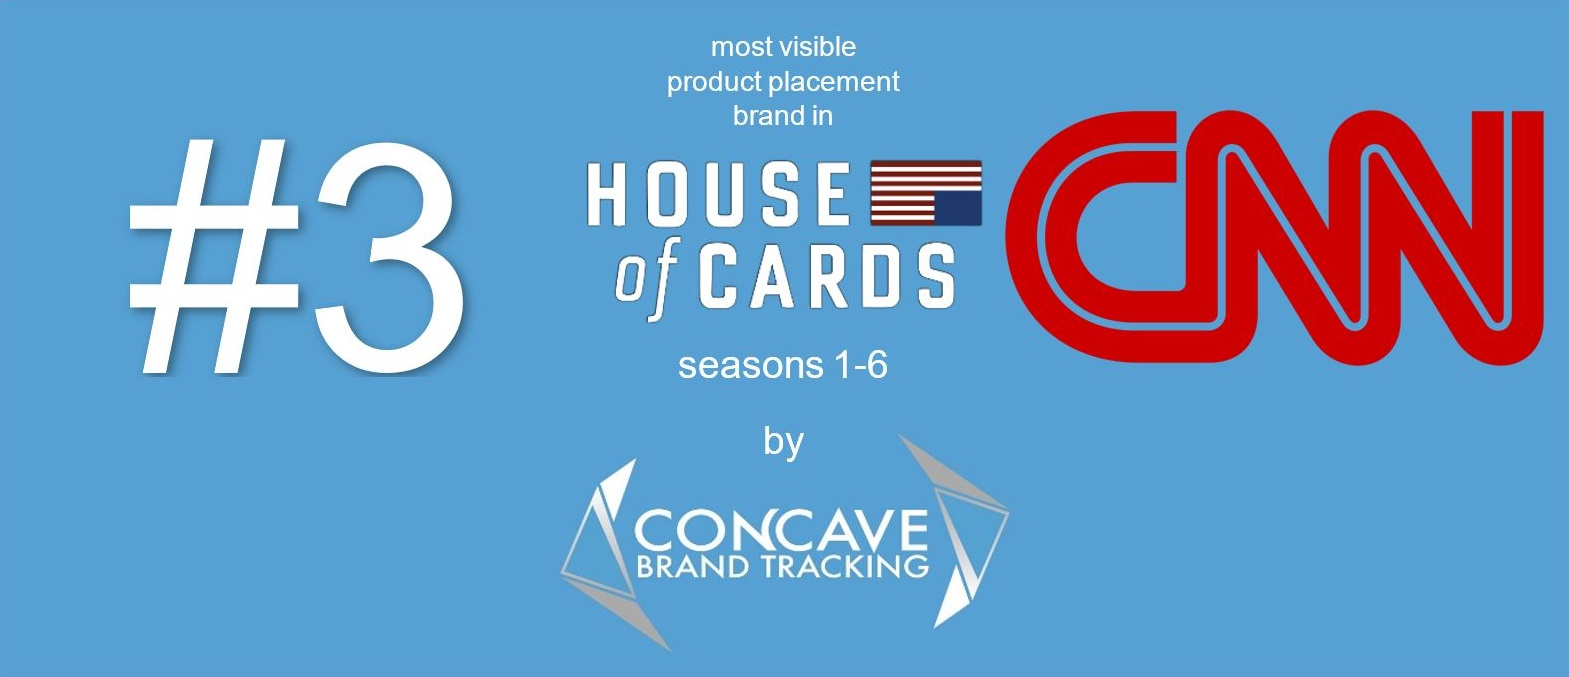 CNN TV channel #3 3 10 most visible product placement brand in HOUSE OF CARDS Concave Brand Tracking